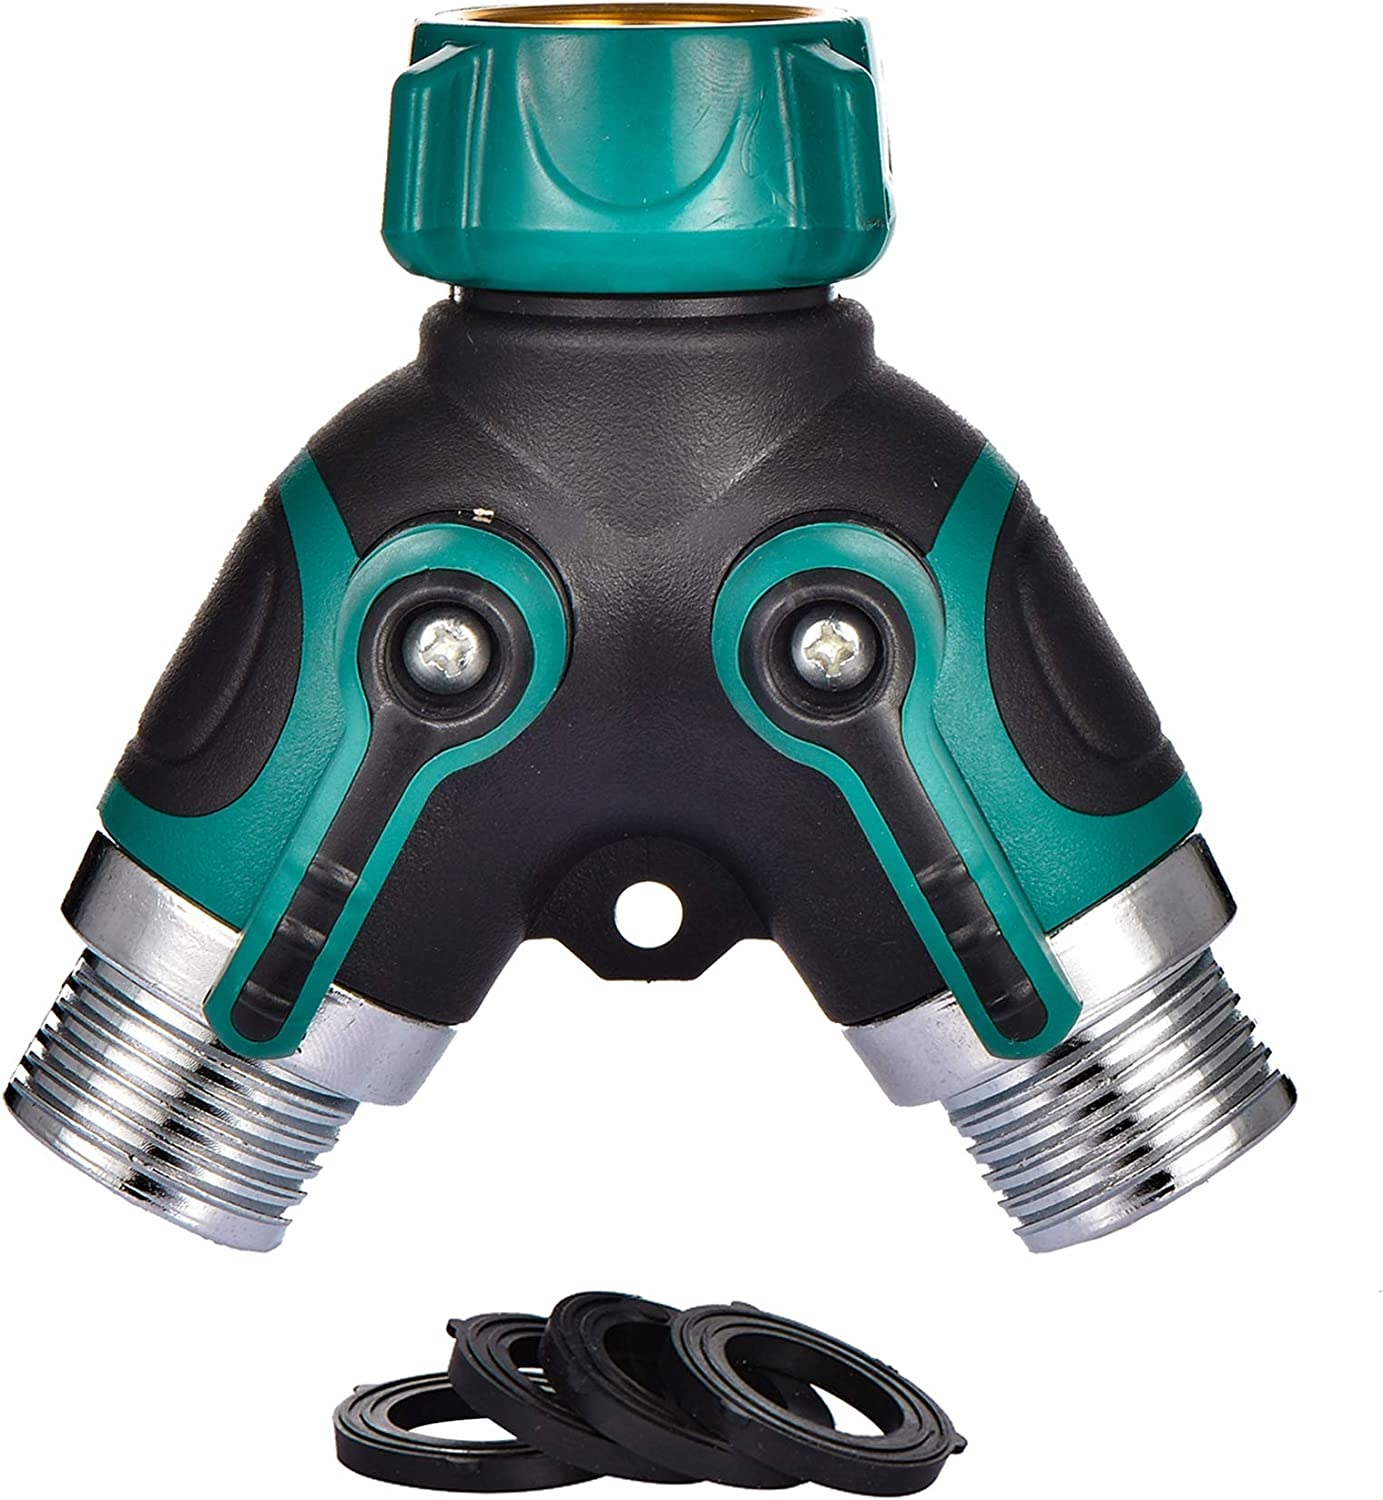 2 Way Hose Splitter Y Connector with Comfortable Rubber Grip and 360 °Rotatable Top Quick Connect Garden Hose Tee Equipment Valve Shut Off